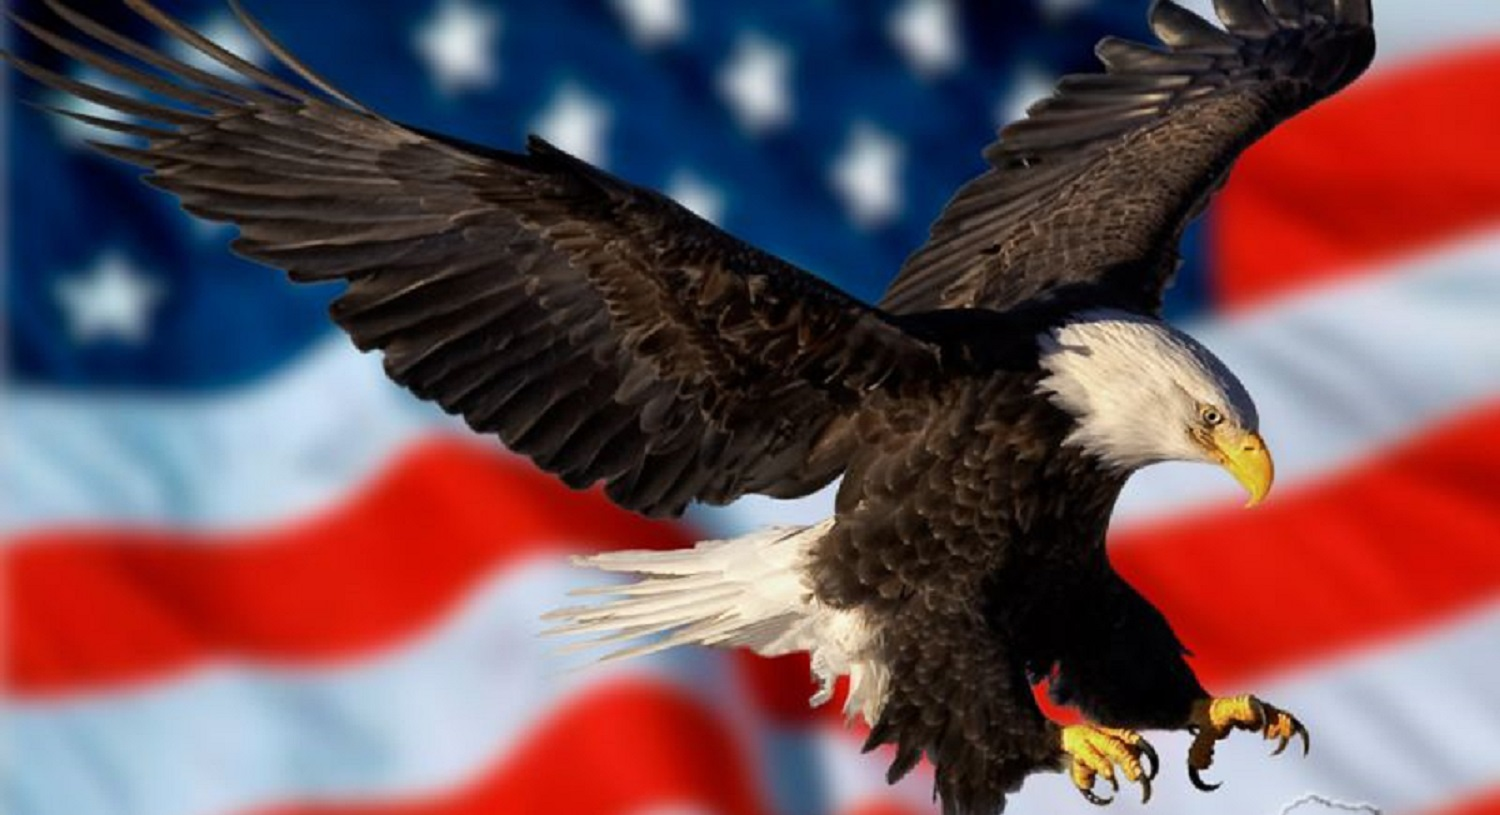 wallpaper of the day: eagle and flag - common sense evaluation